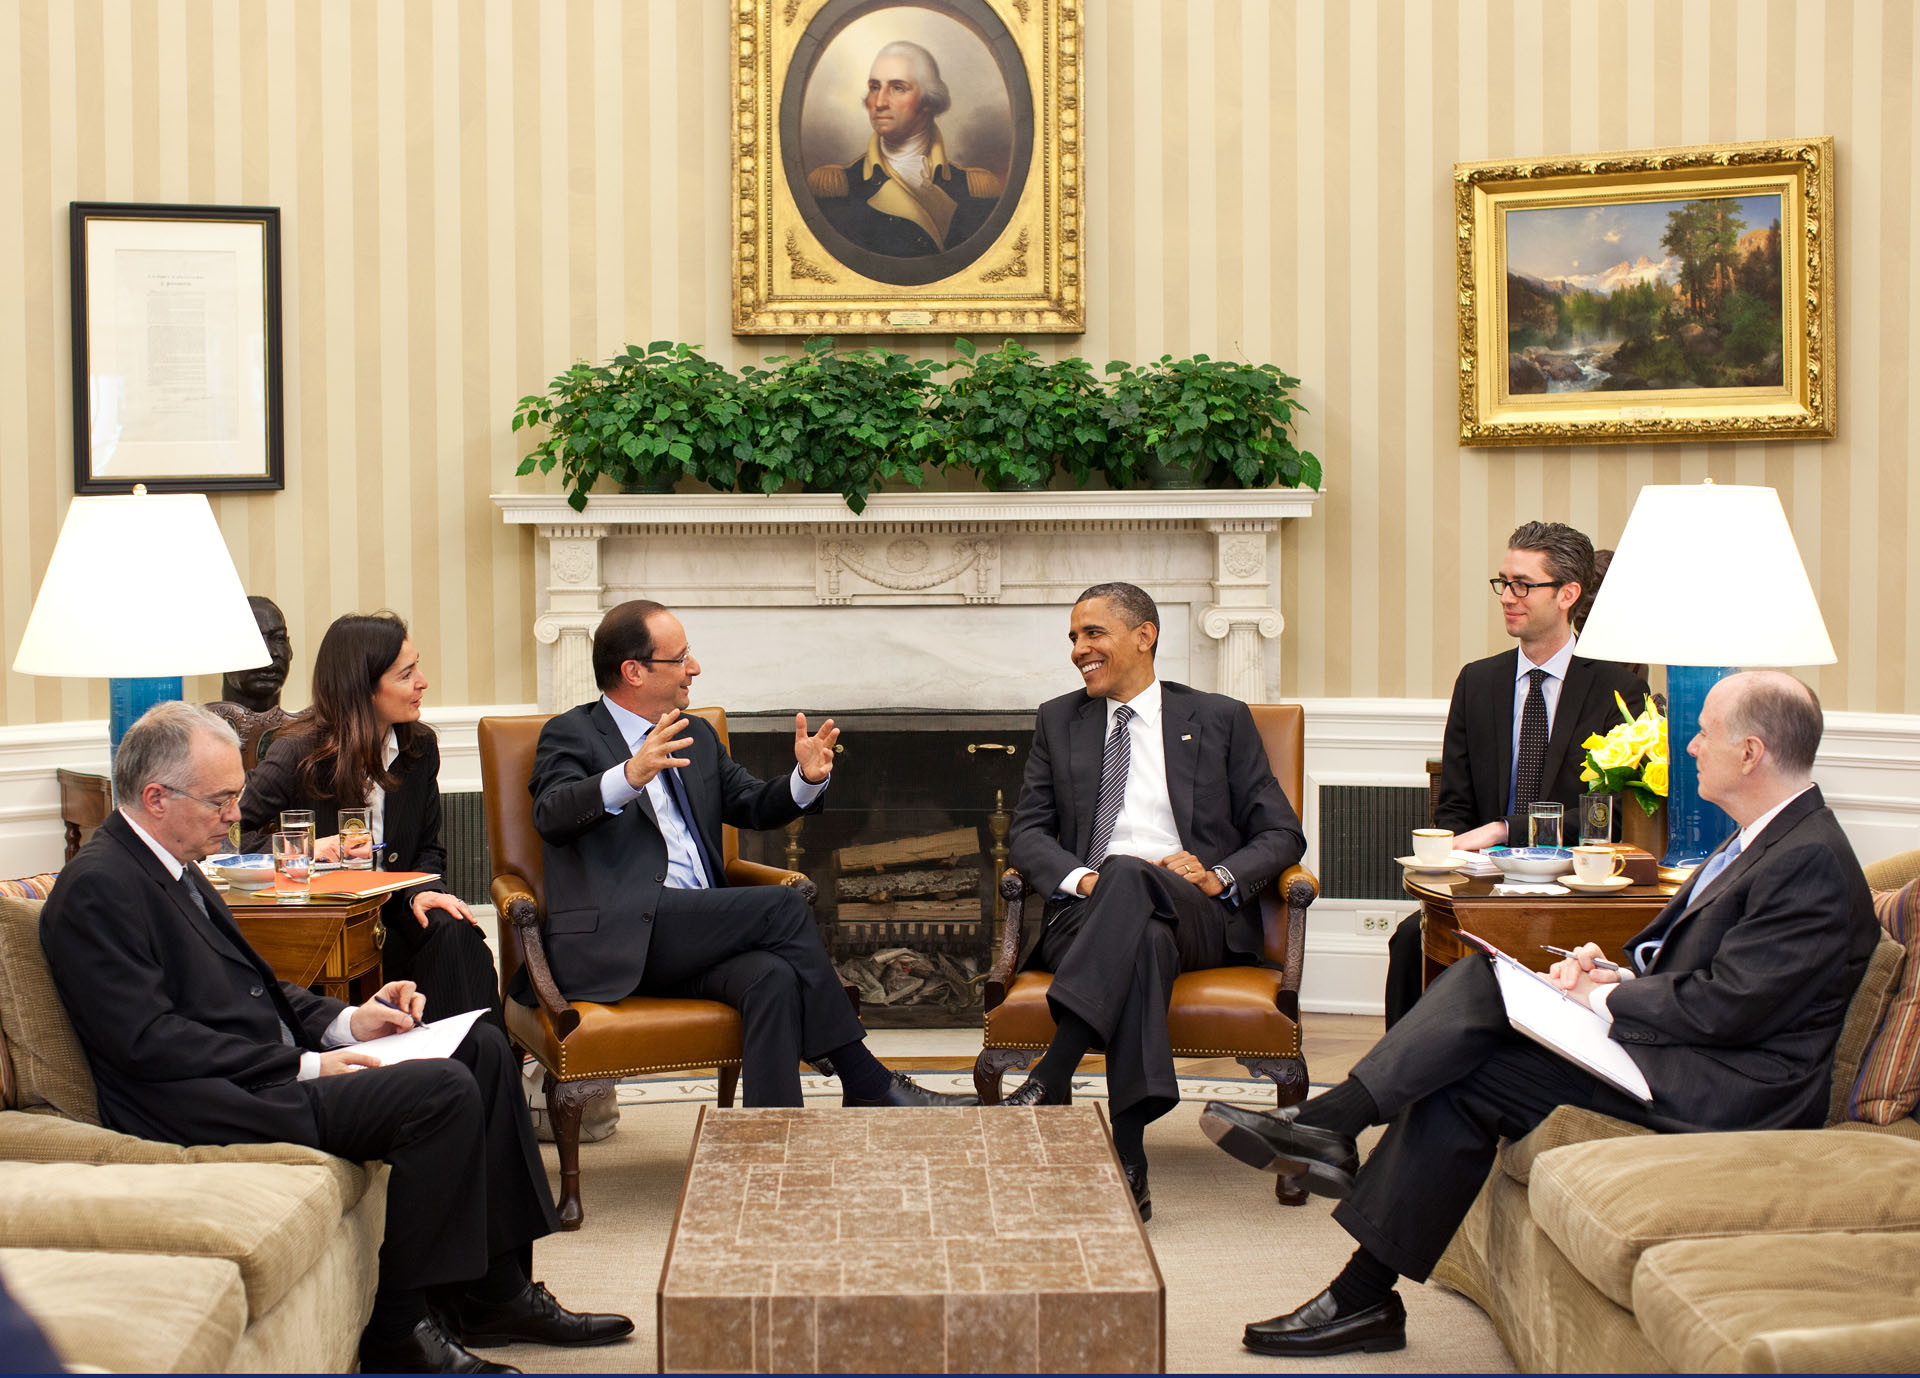 President Obama with President François Hollande of France in the Oval Office, May 18, 2012